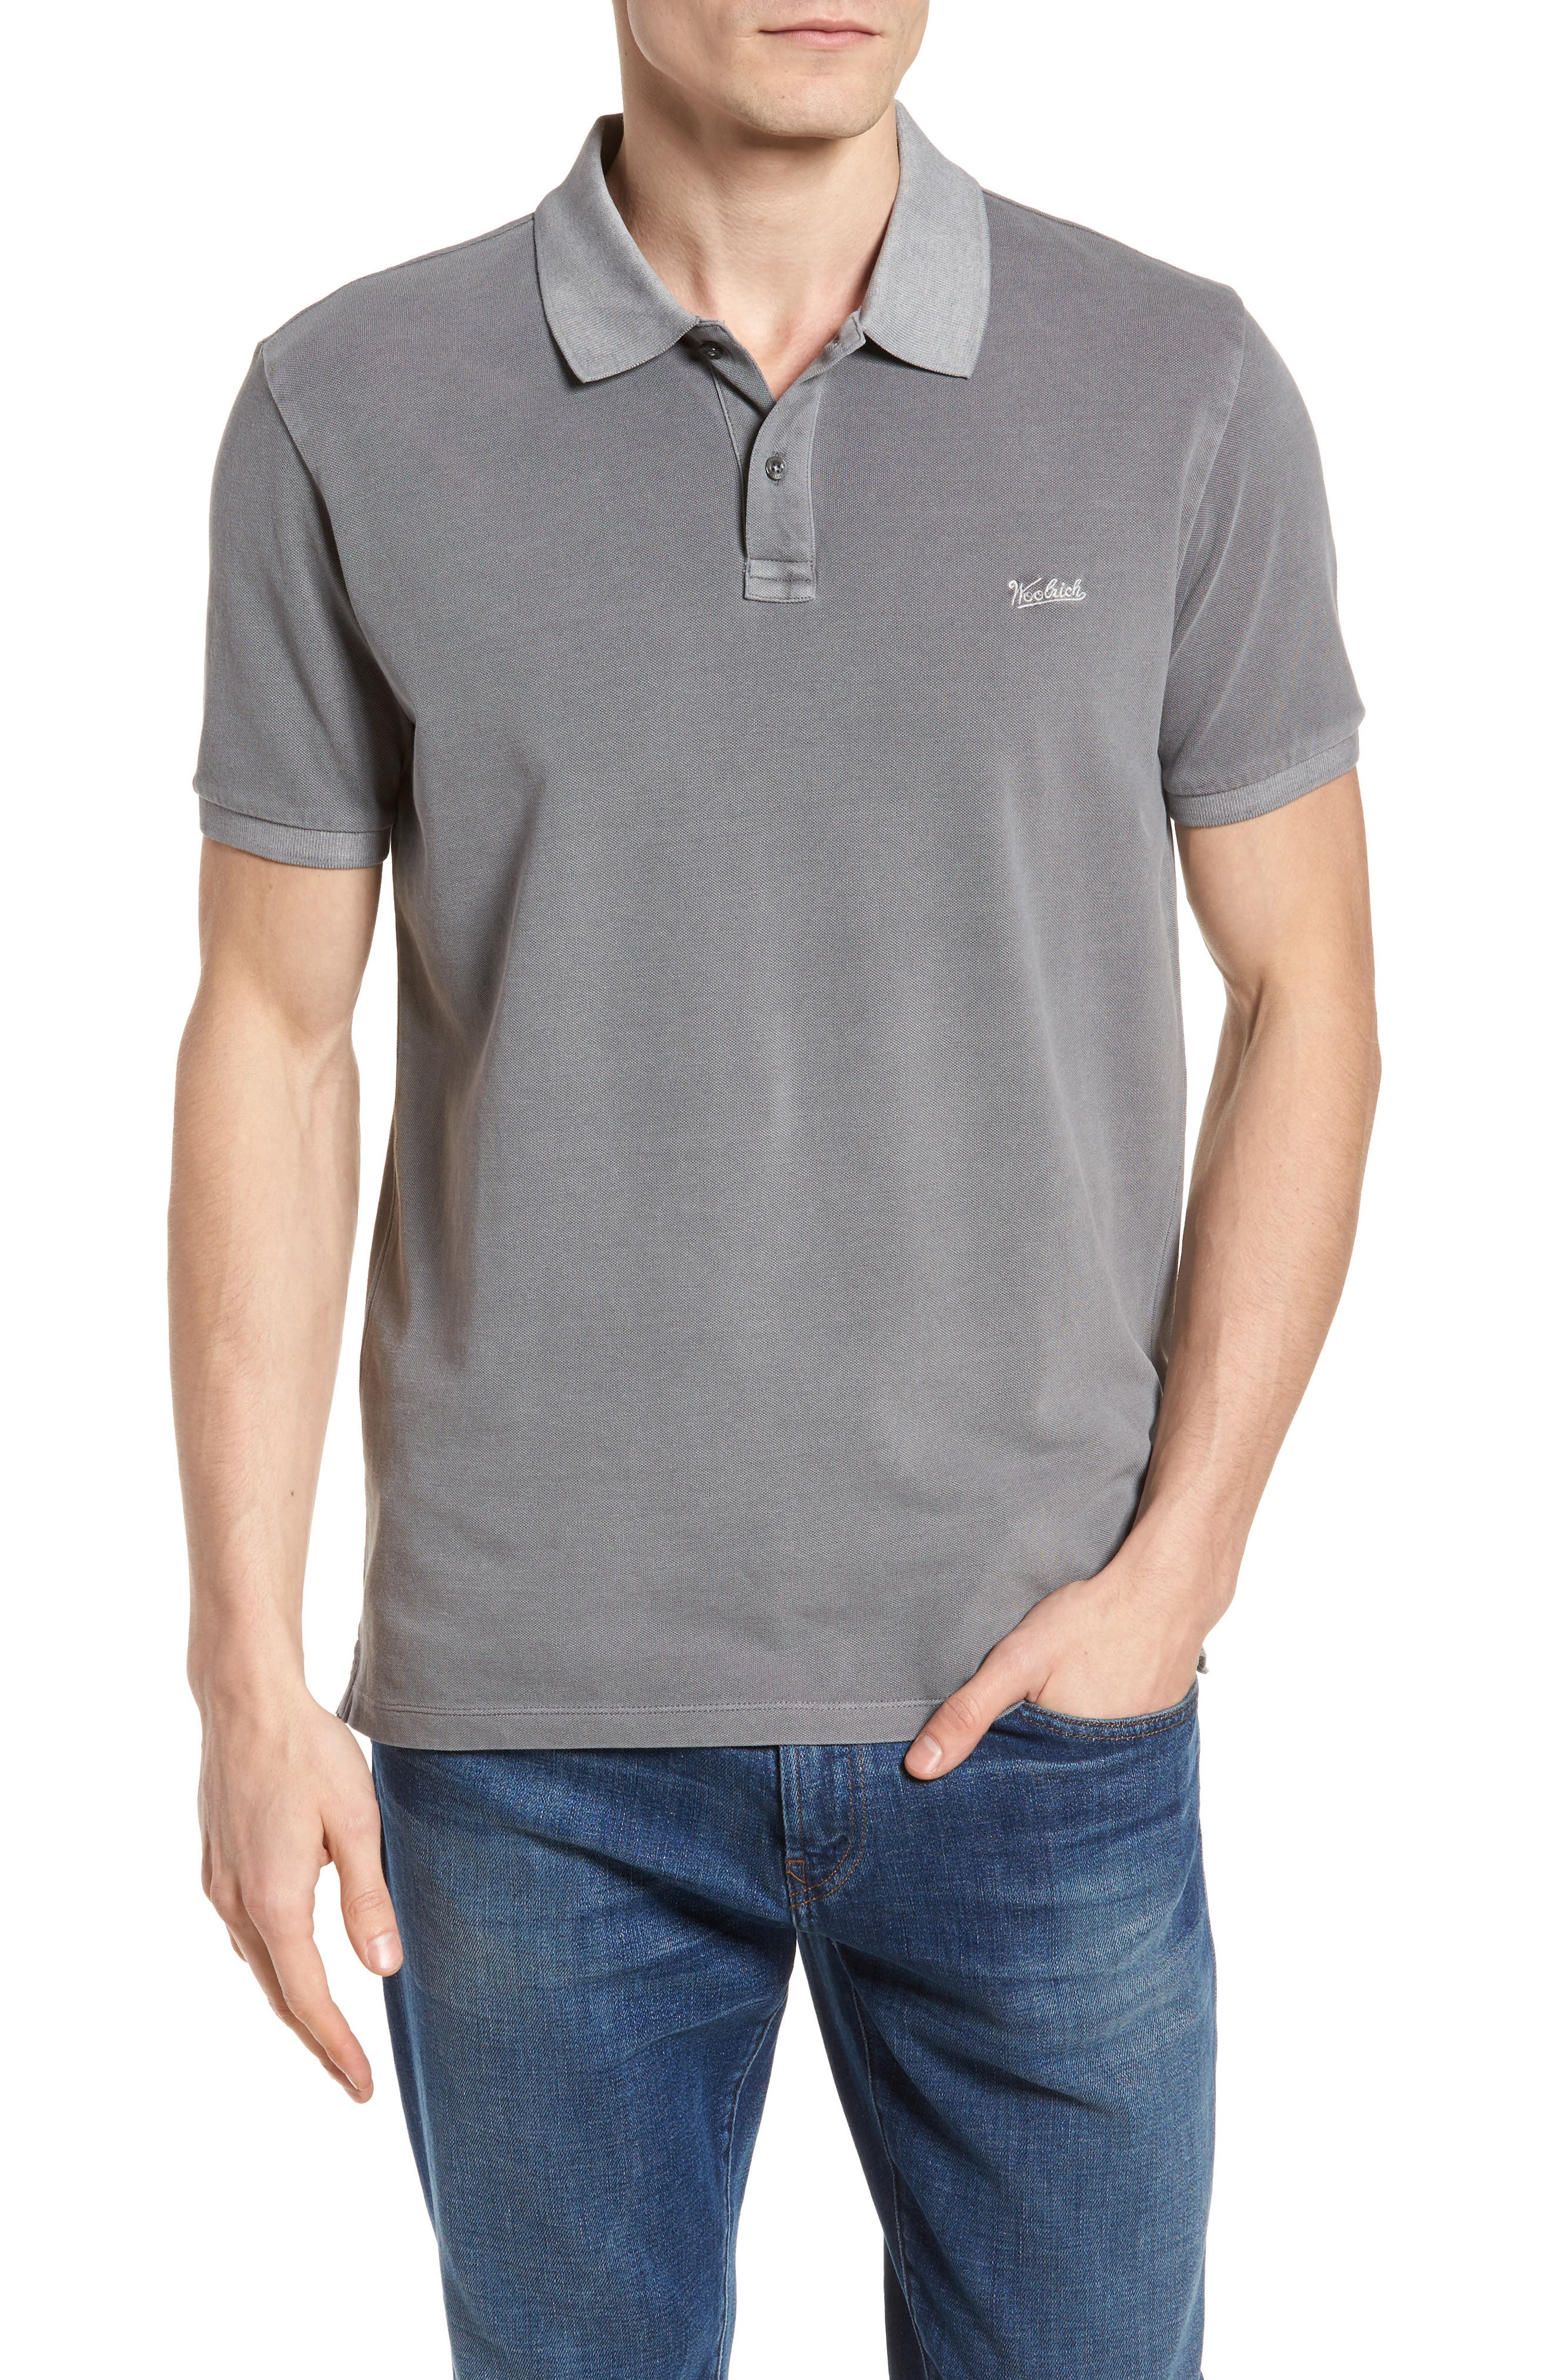 & Bros. Vintage Mackinack Polo,                             Main thumbnail 1, color,                             STEEL GREY